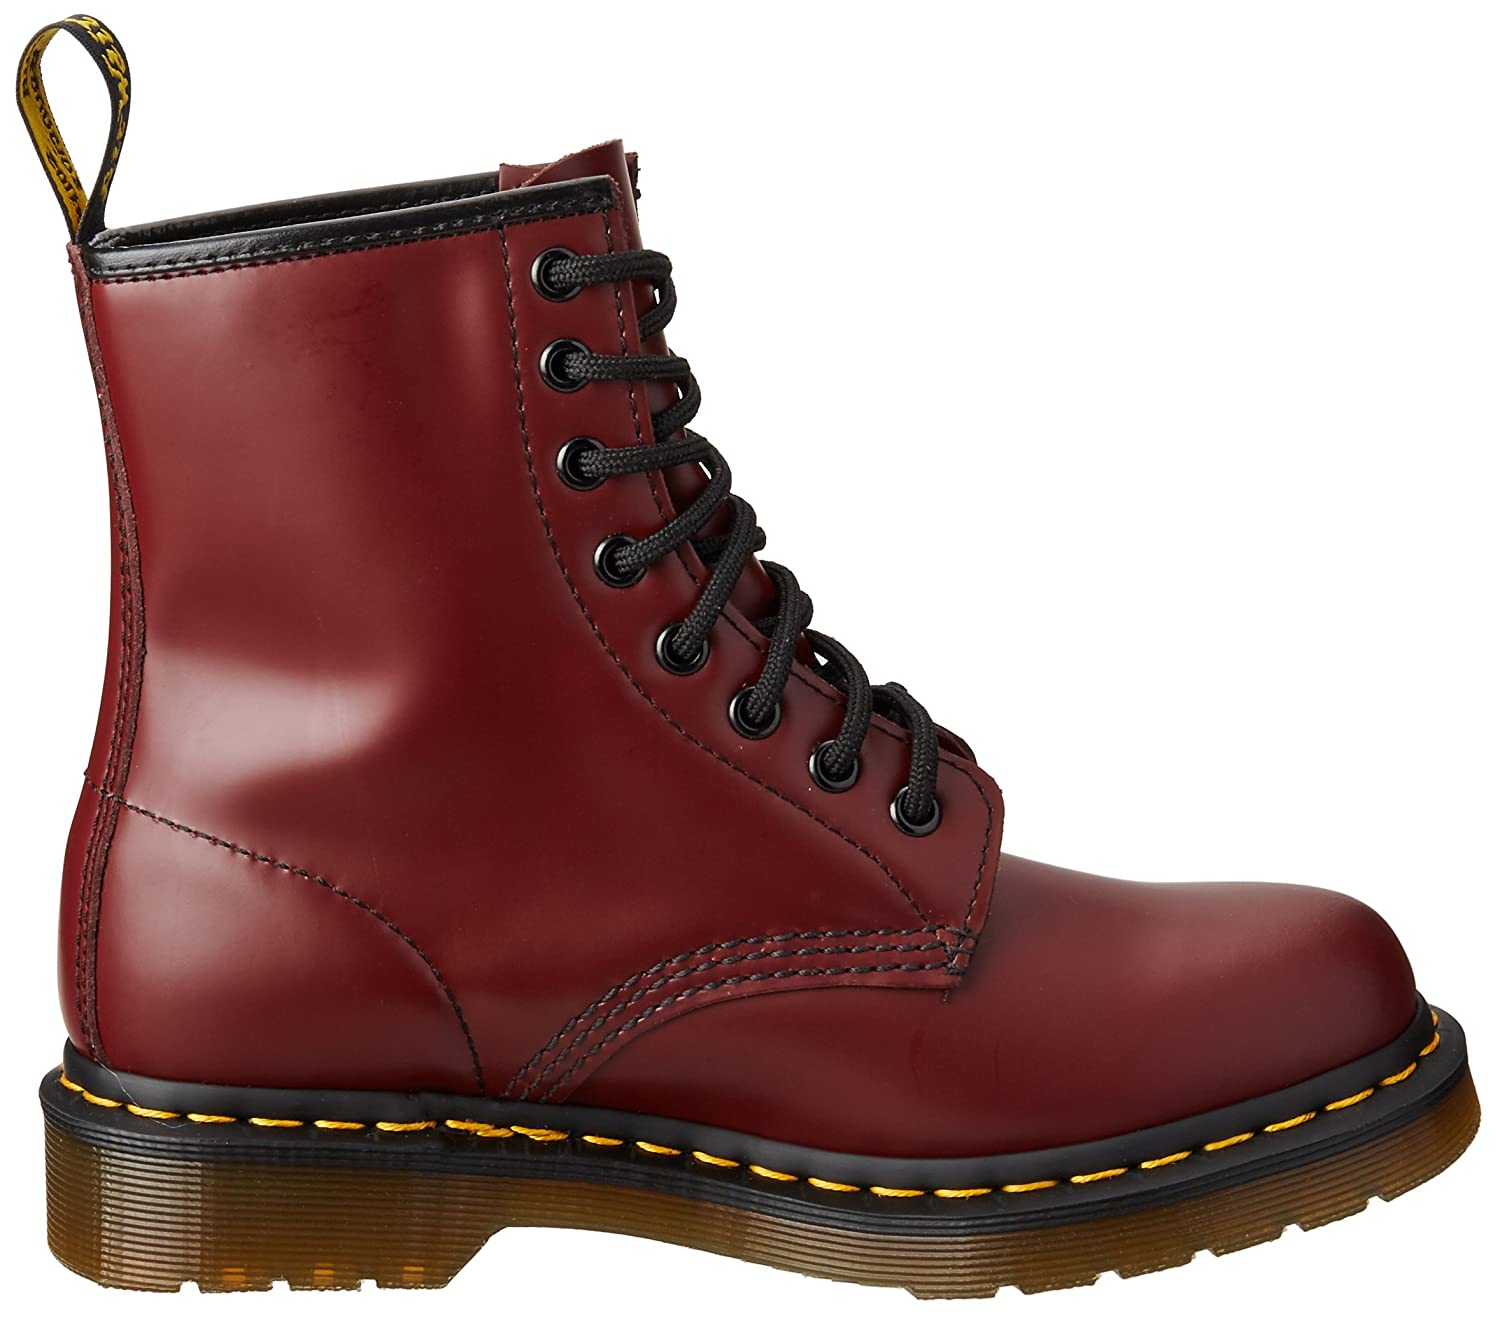 Dr. Martens Men's 1460 Combat Boot, 8.5 B(M) US Women/7.5 D(M) US Men B00178URXY 7 M US/ 5 UK|Cherry Red Rouge Smooth